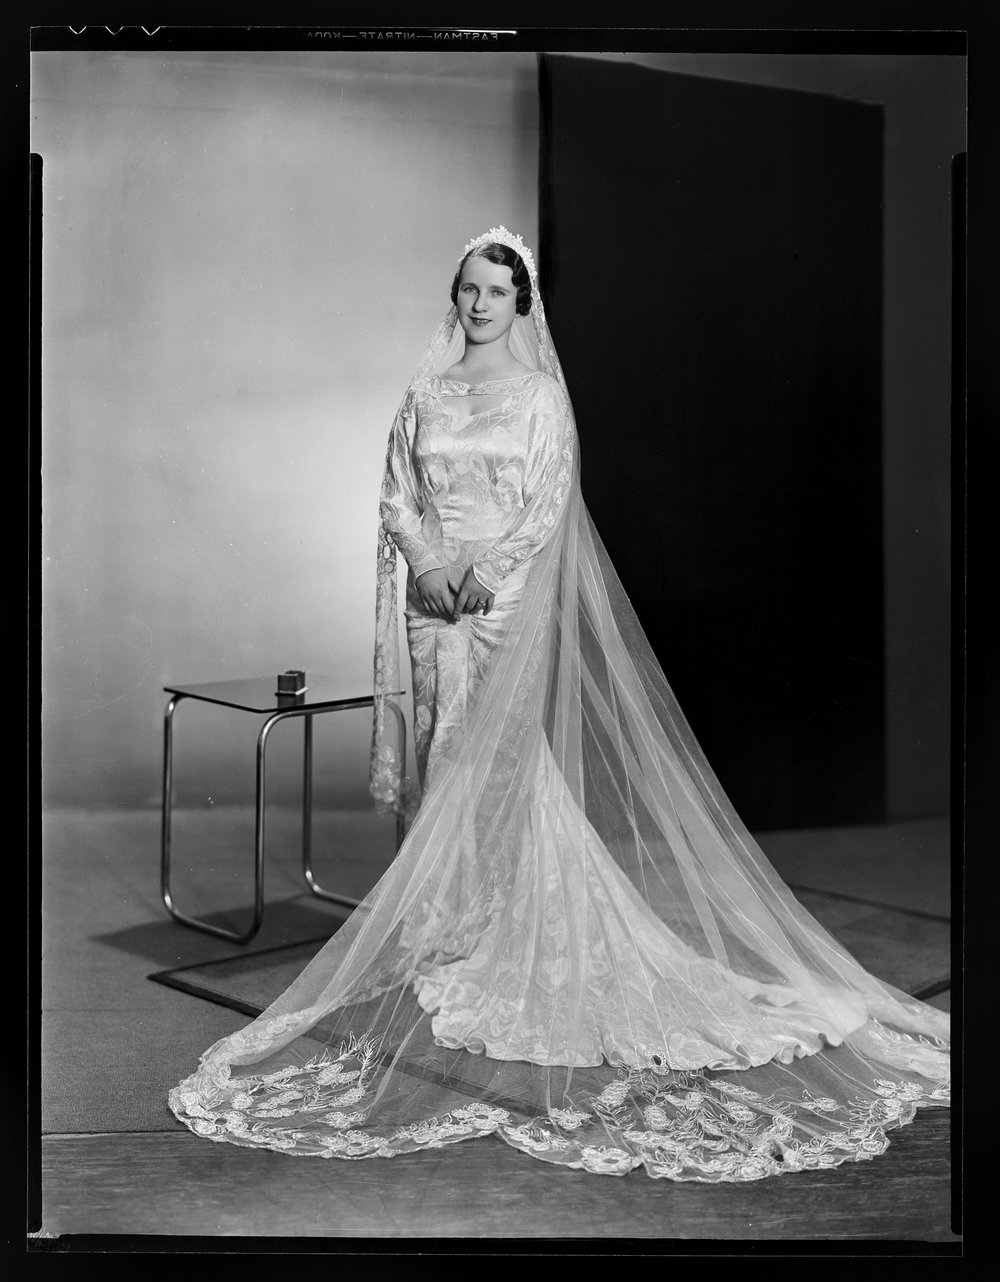 Museum of New Zealand: Mrs AJ Jeavons Wedding, Spencer Digby Studios, 1936